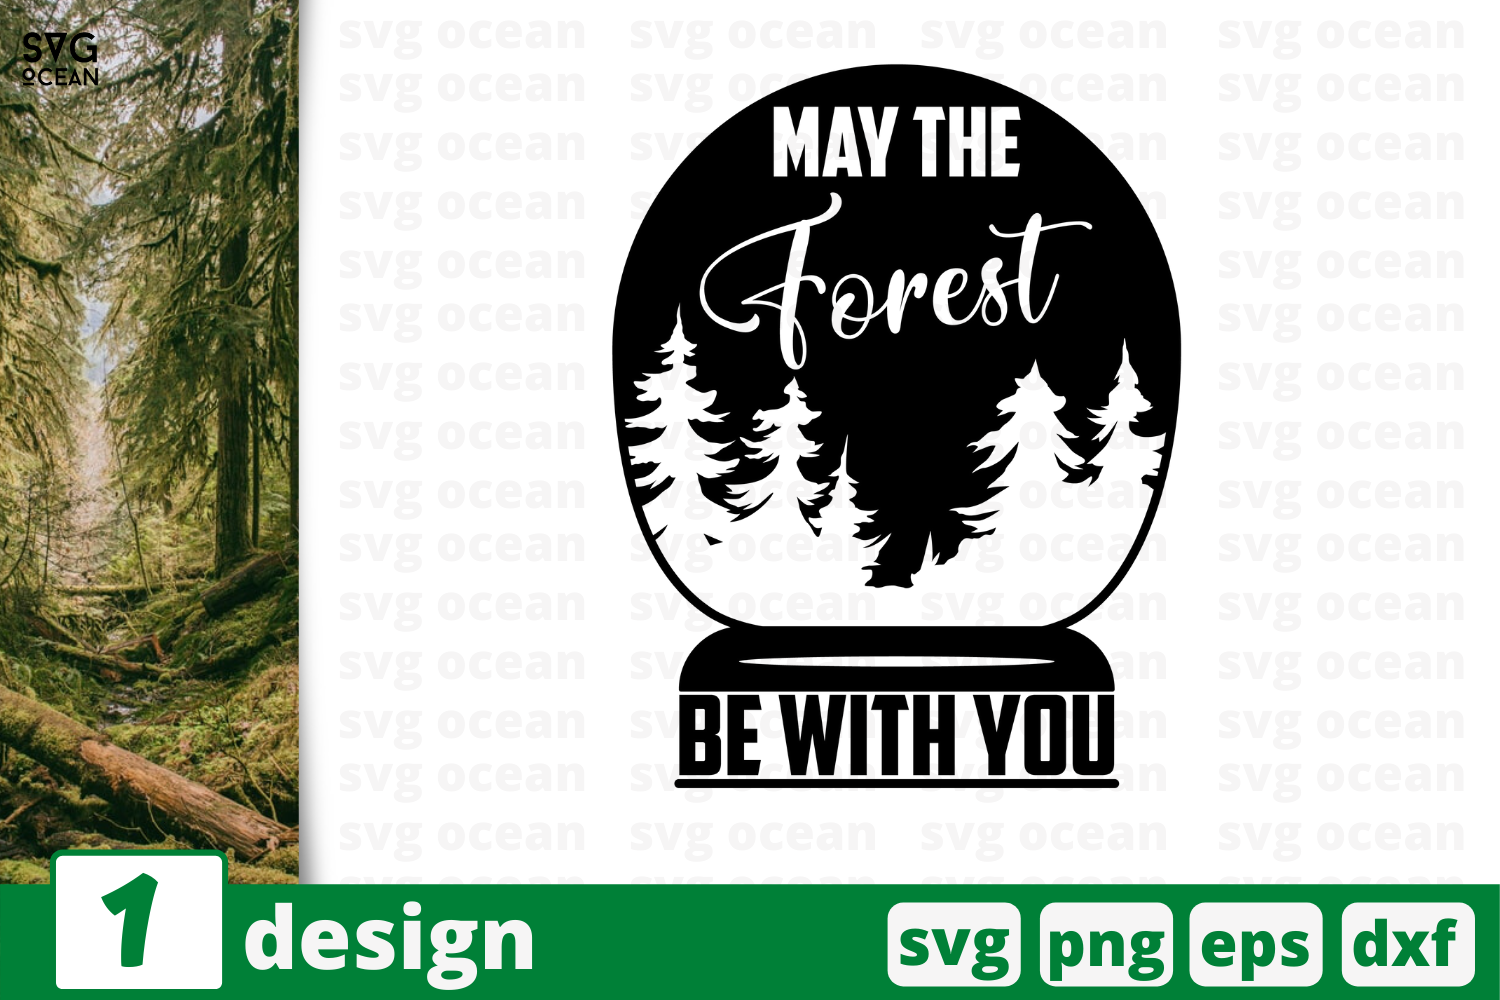 Download Free May The Forest Be With You Graphic By Svgocean Creative Fabrica for Cricut Explore, Silhouette and other cutting machines.